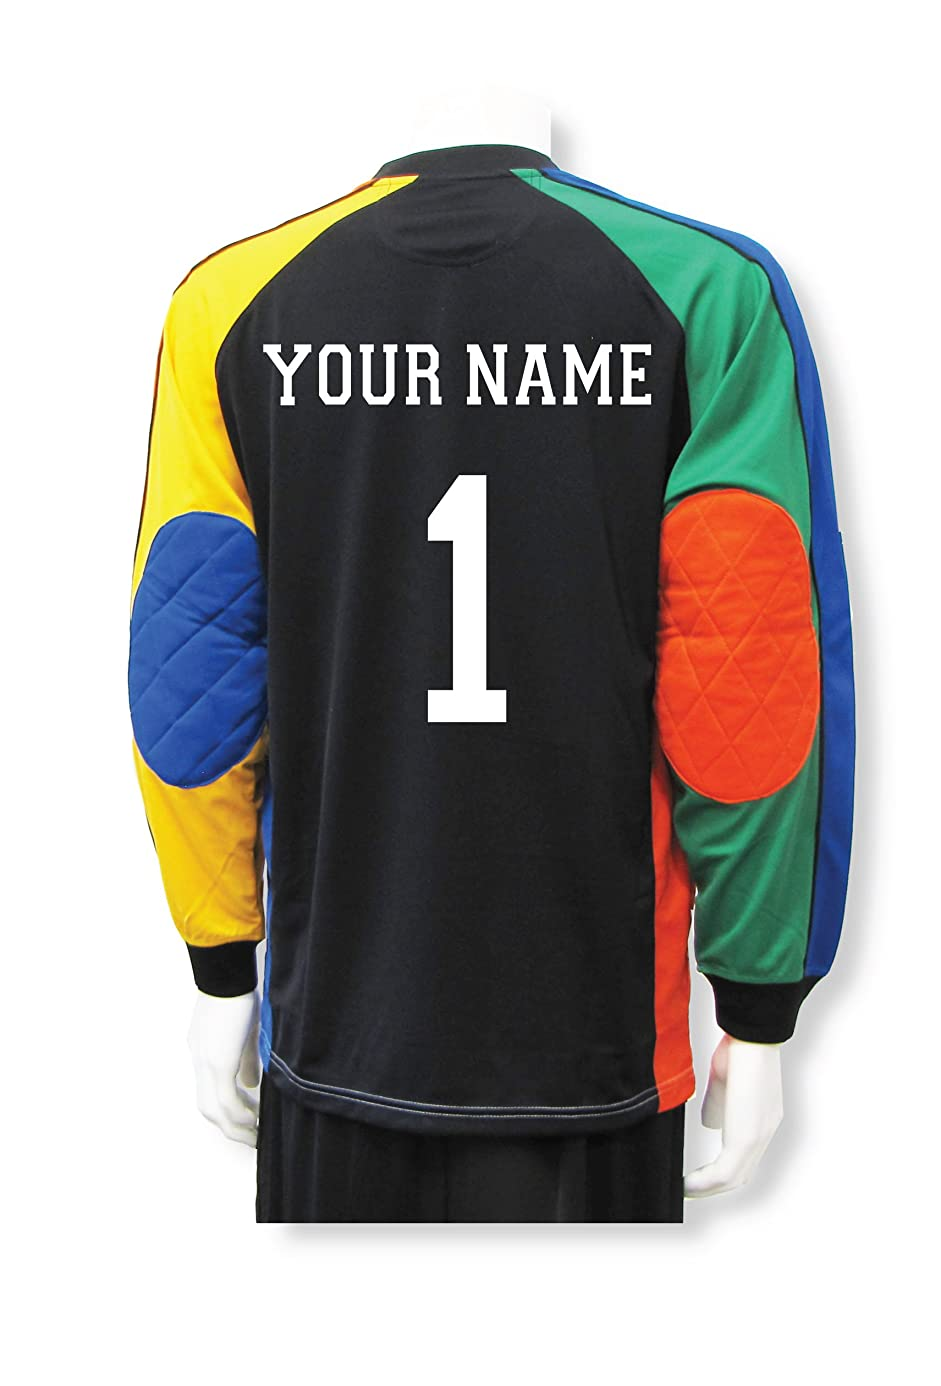 Soccer Goalkeeper Jersey Customized With Your Name and Number